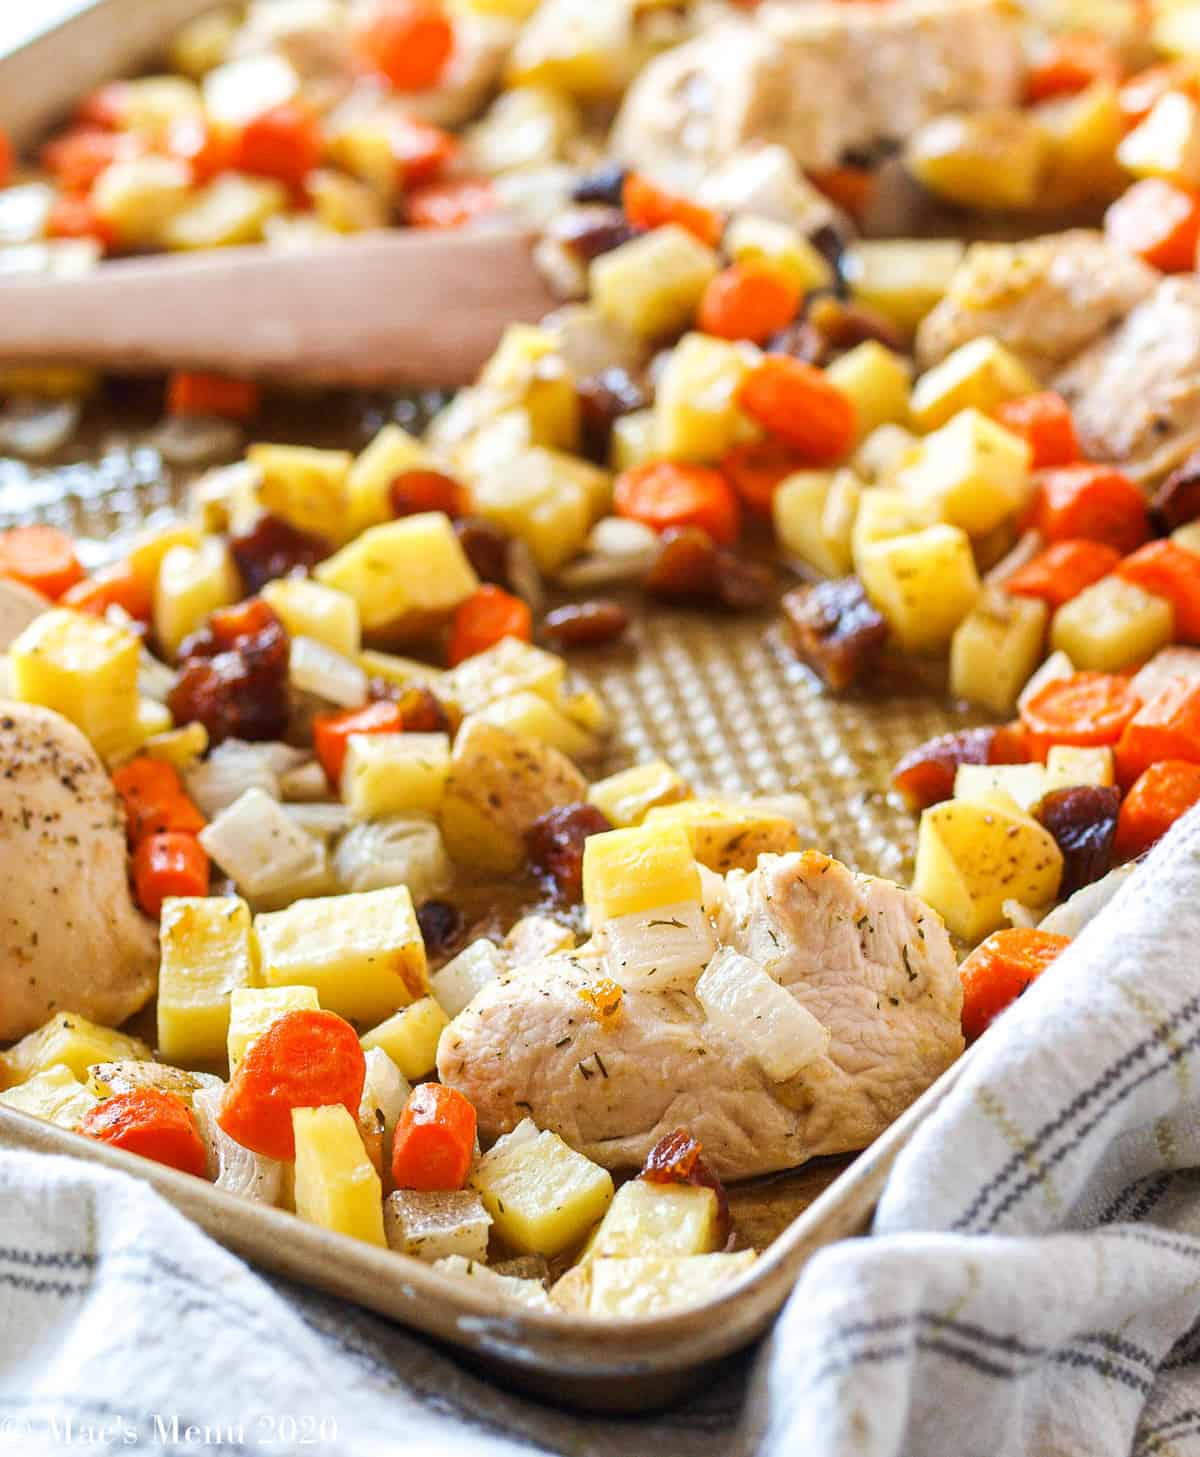 A large baking sheet full of the sheet pan apricot chicken and potatoes with a wooden spoon on the tray with the food